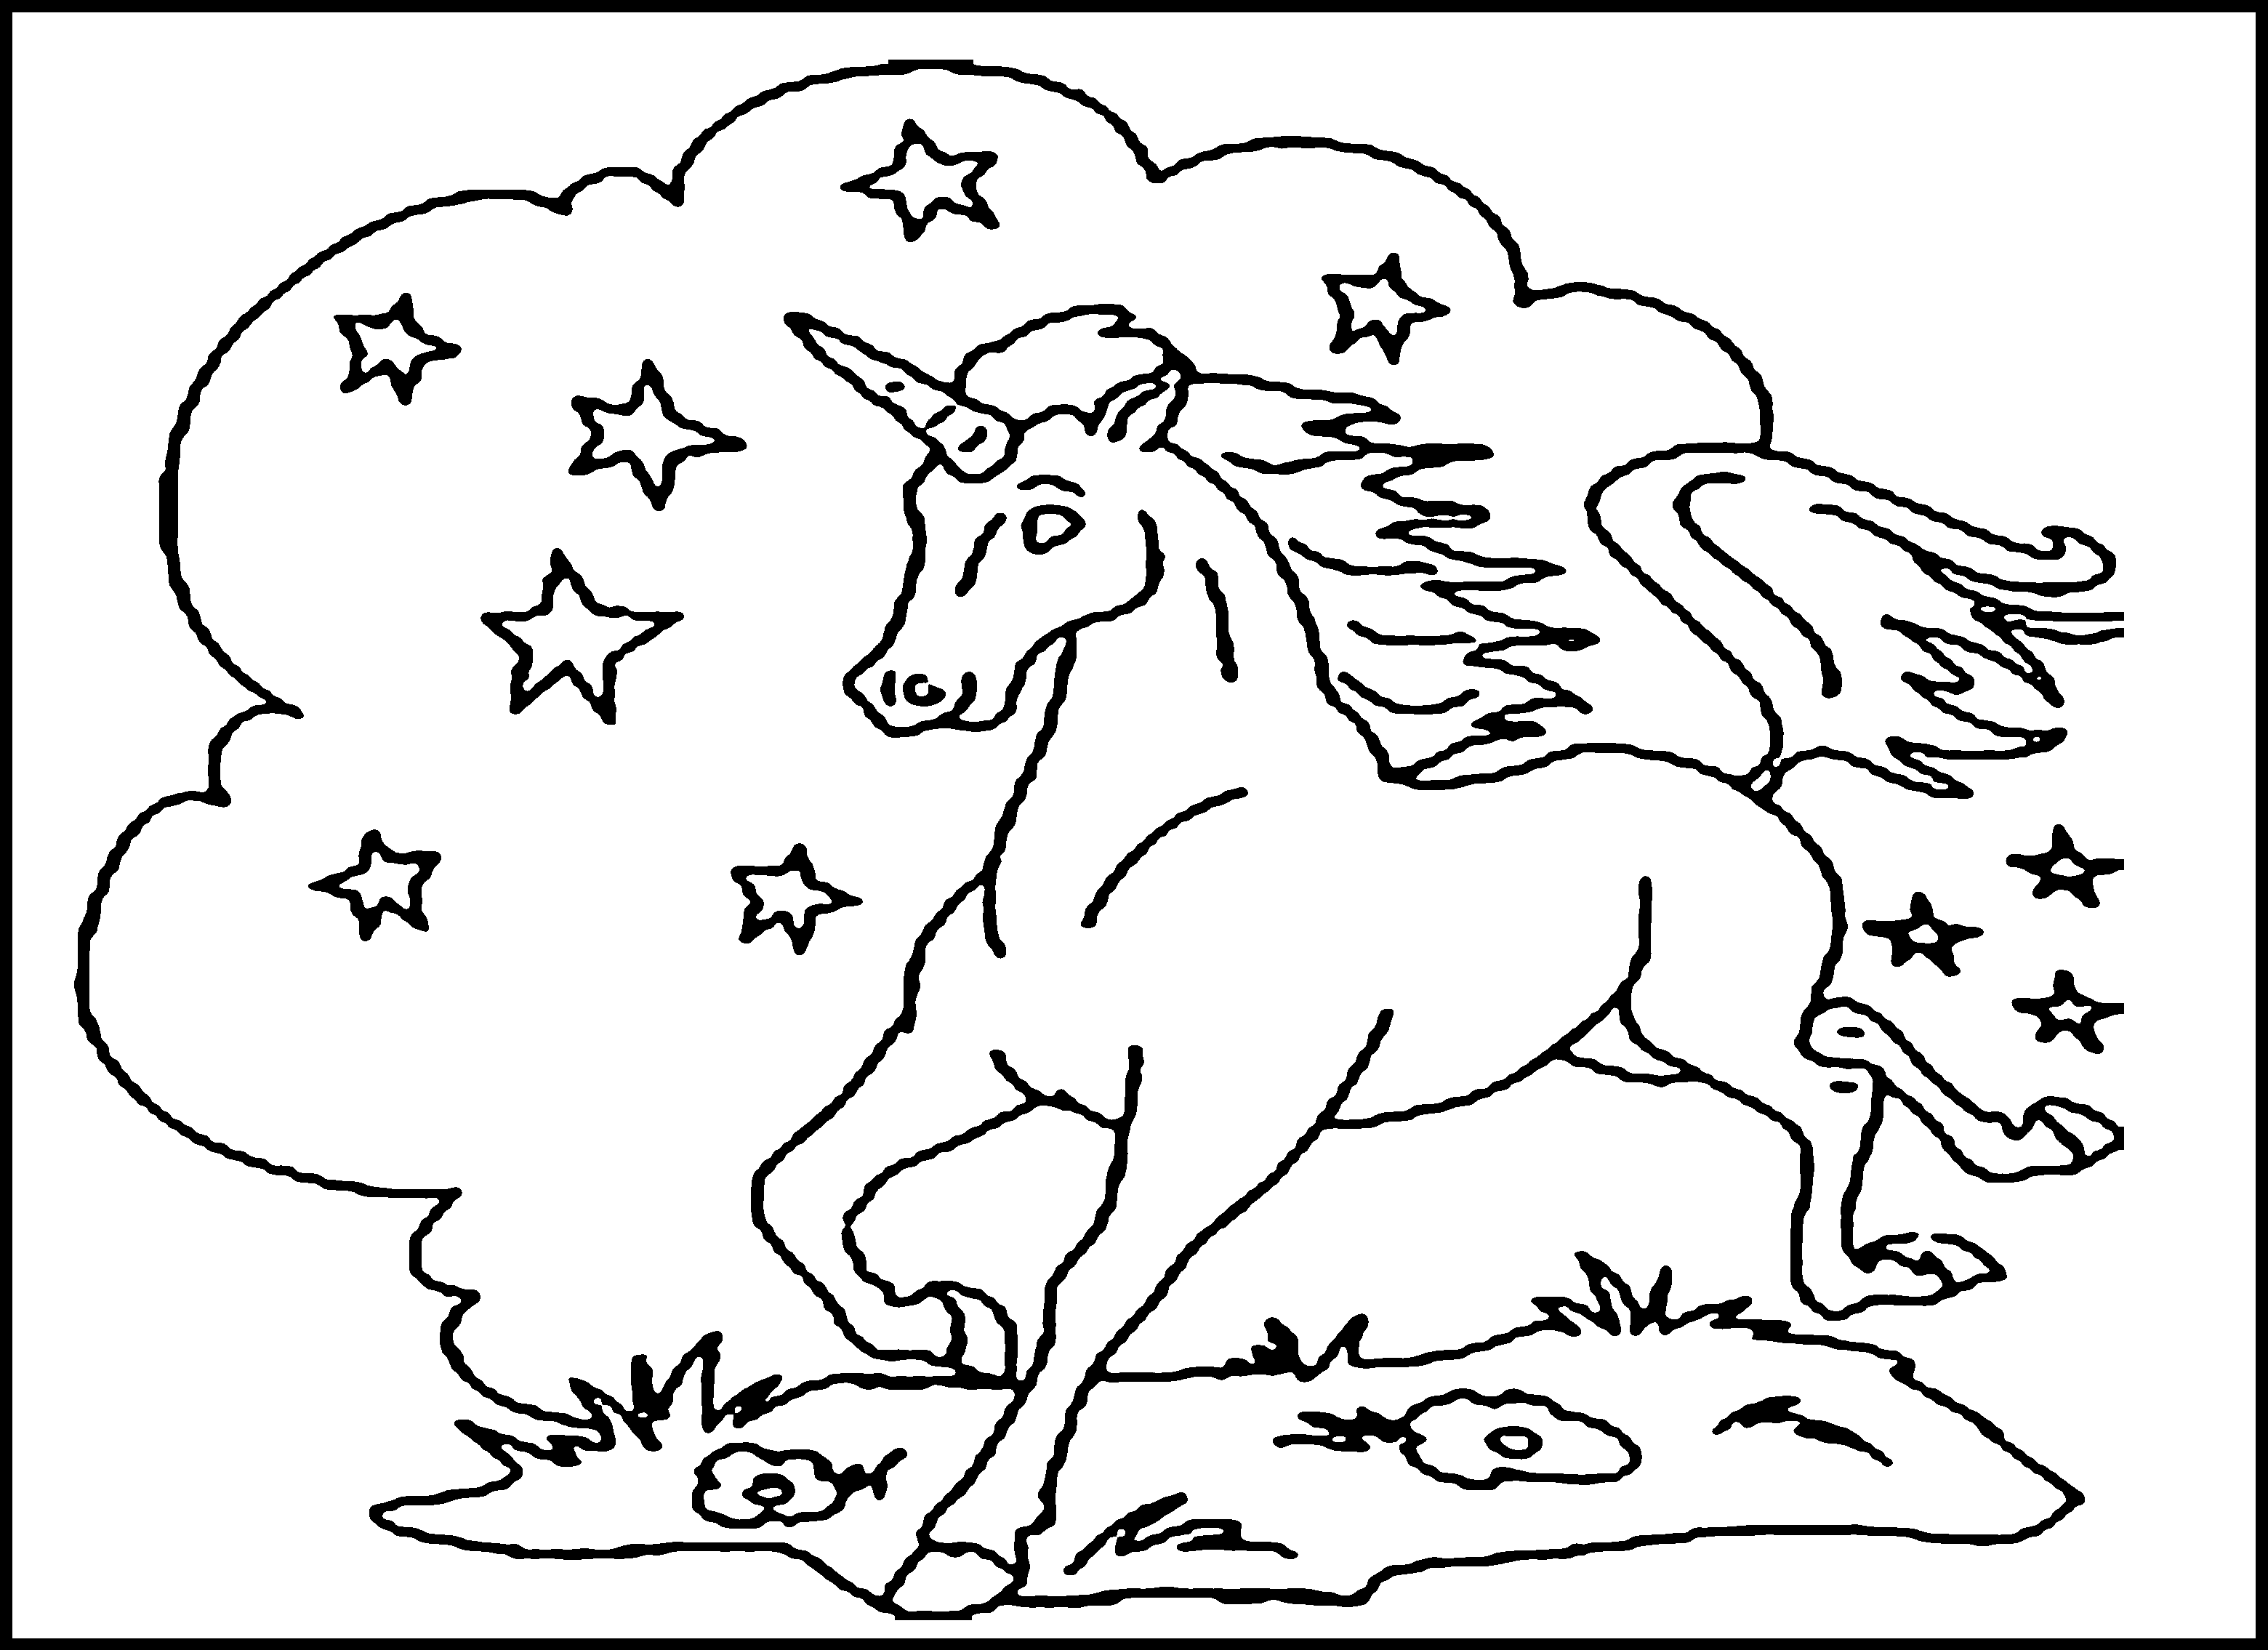 Free printable coloring pages unicorns - Unicorn Printable Coloring Pages